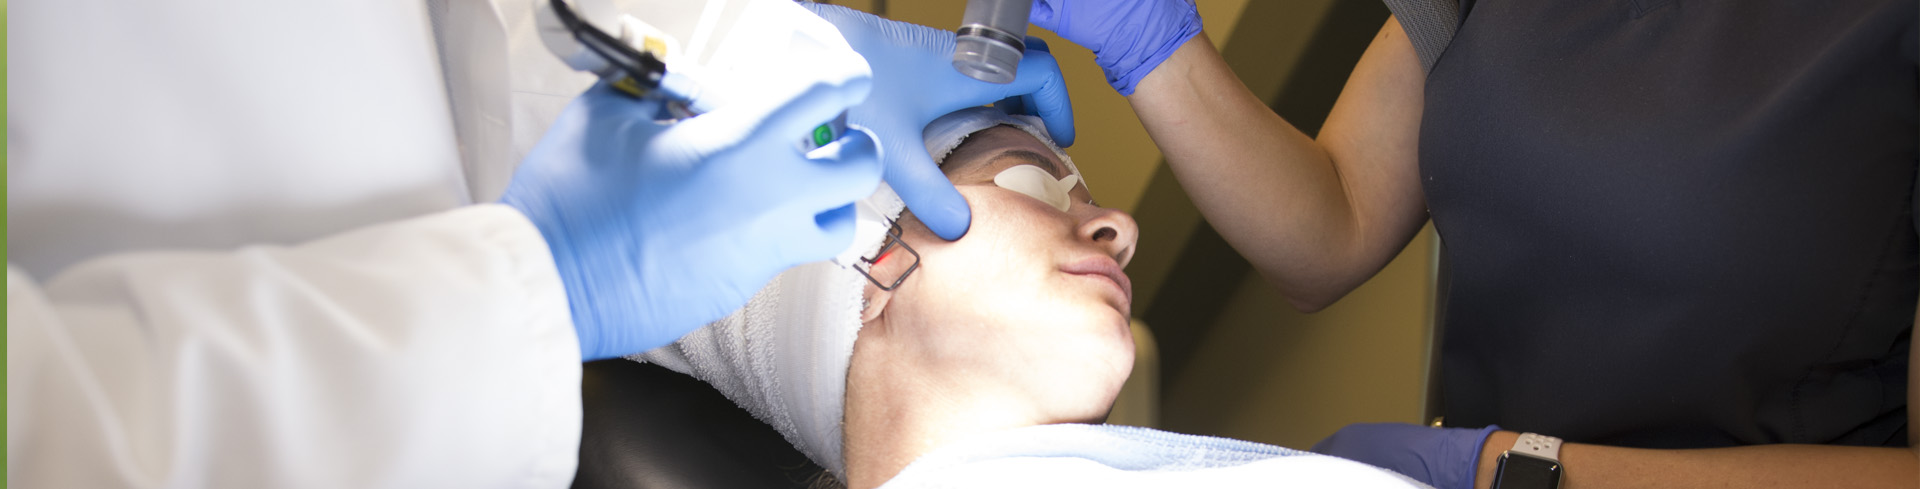 Advanced Technology   Laser Treatments   Learn More